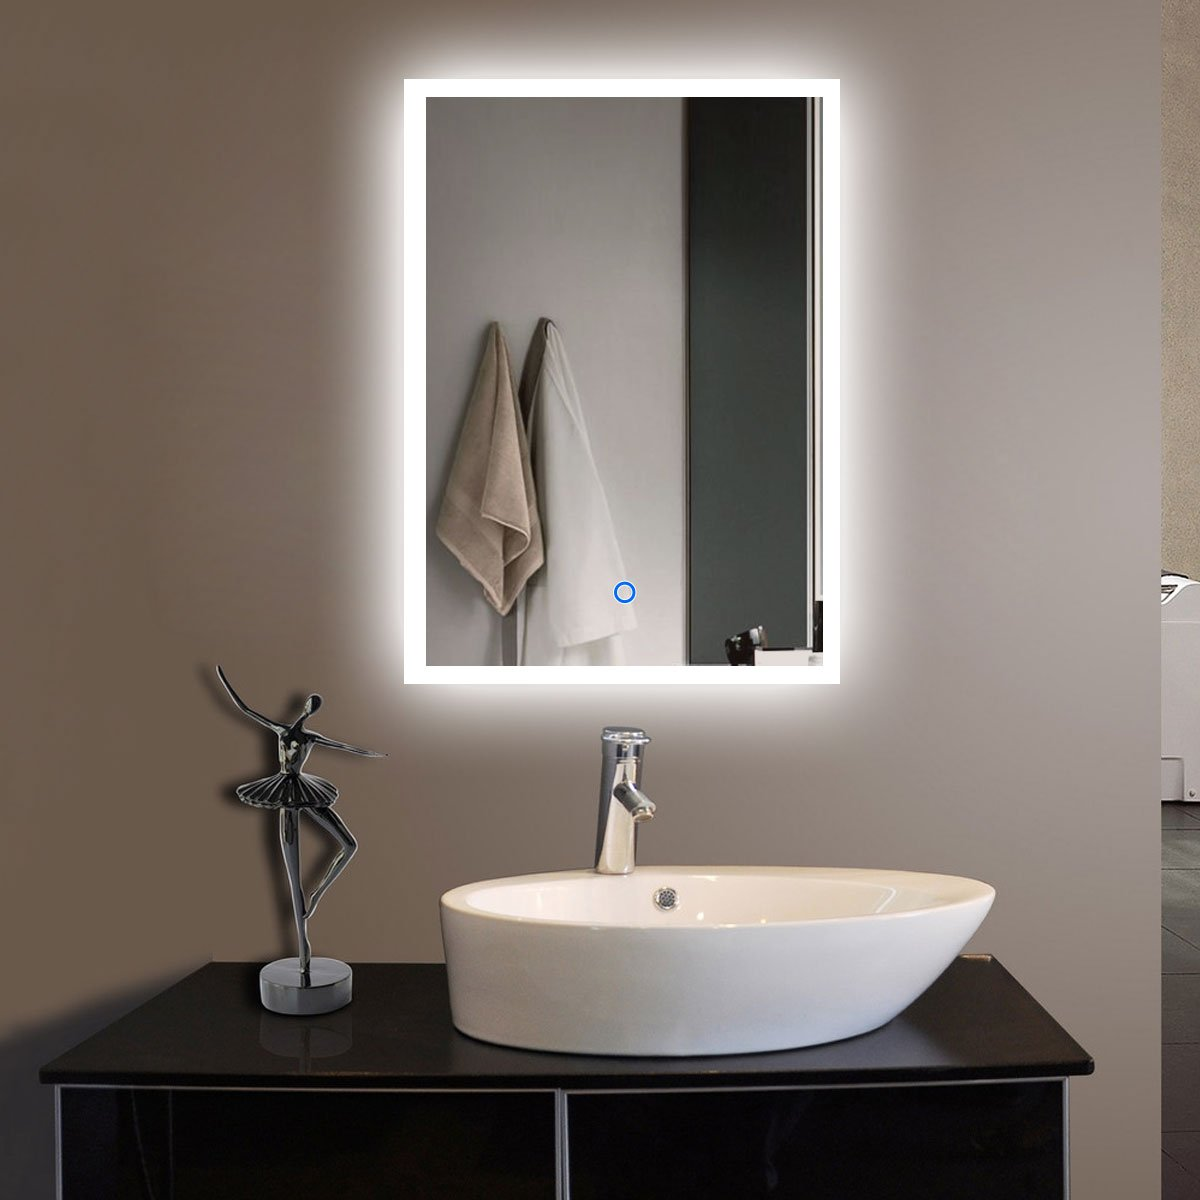 Amazoncom 55 X 36 In Led Decorative Bathroom Silvered Mirror With